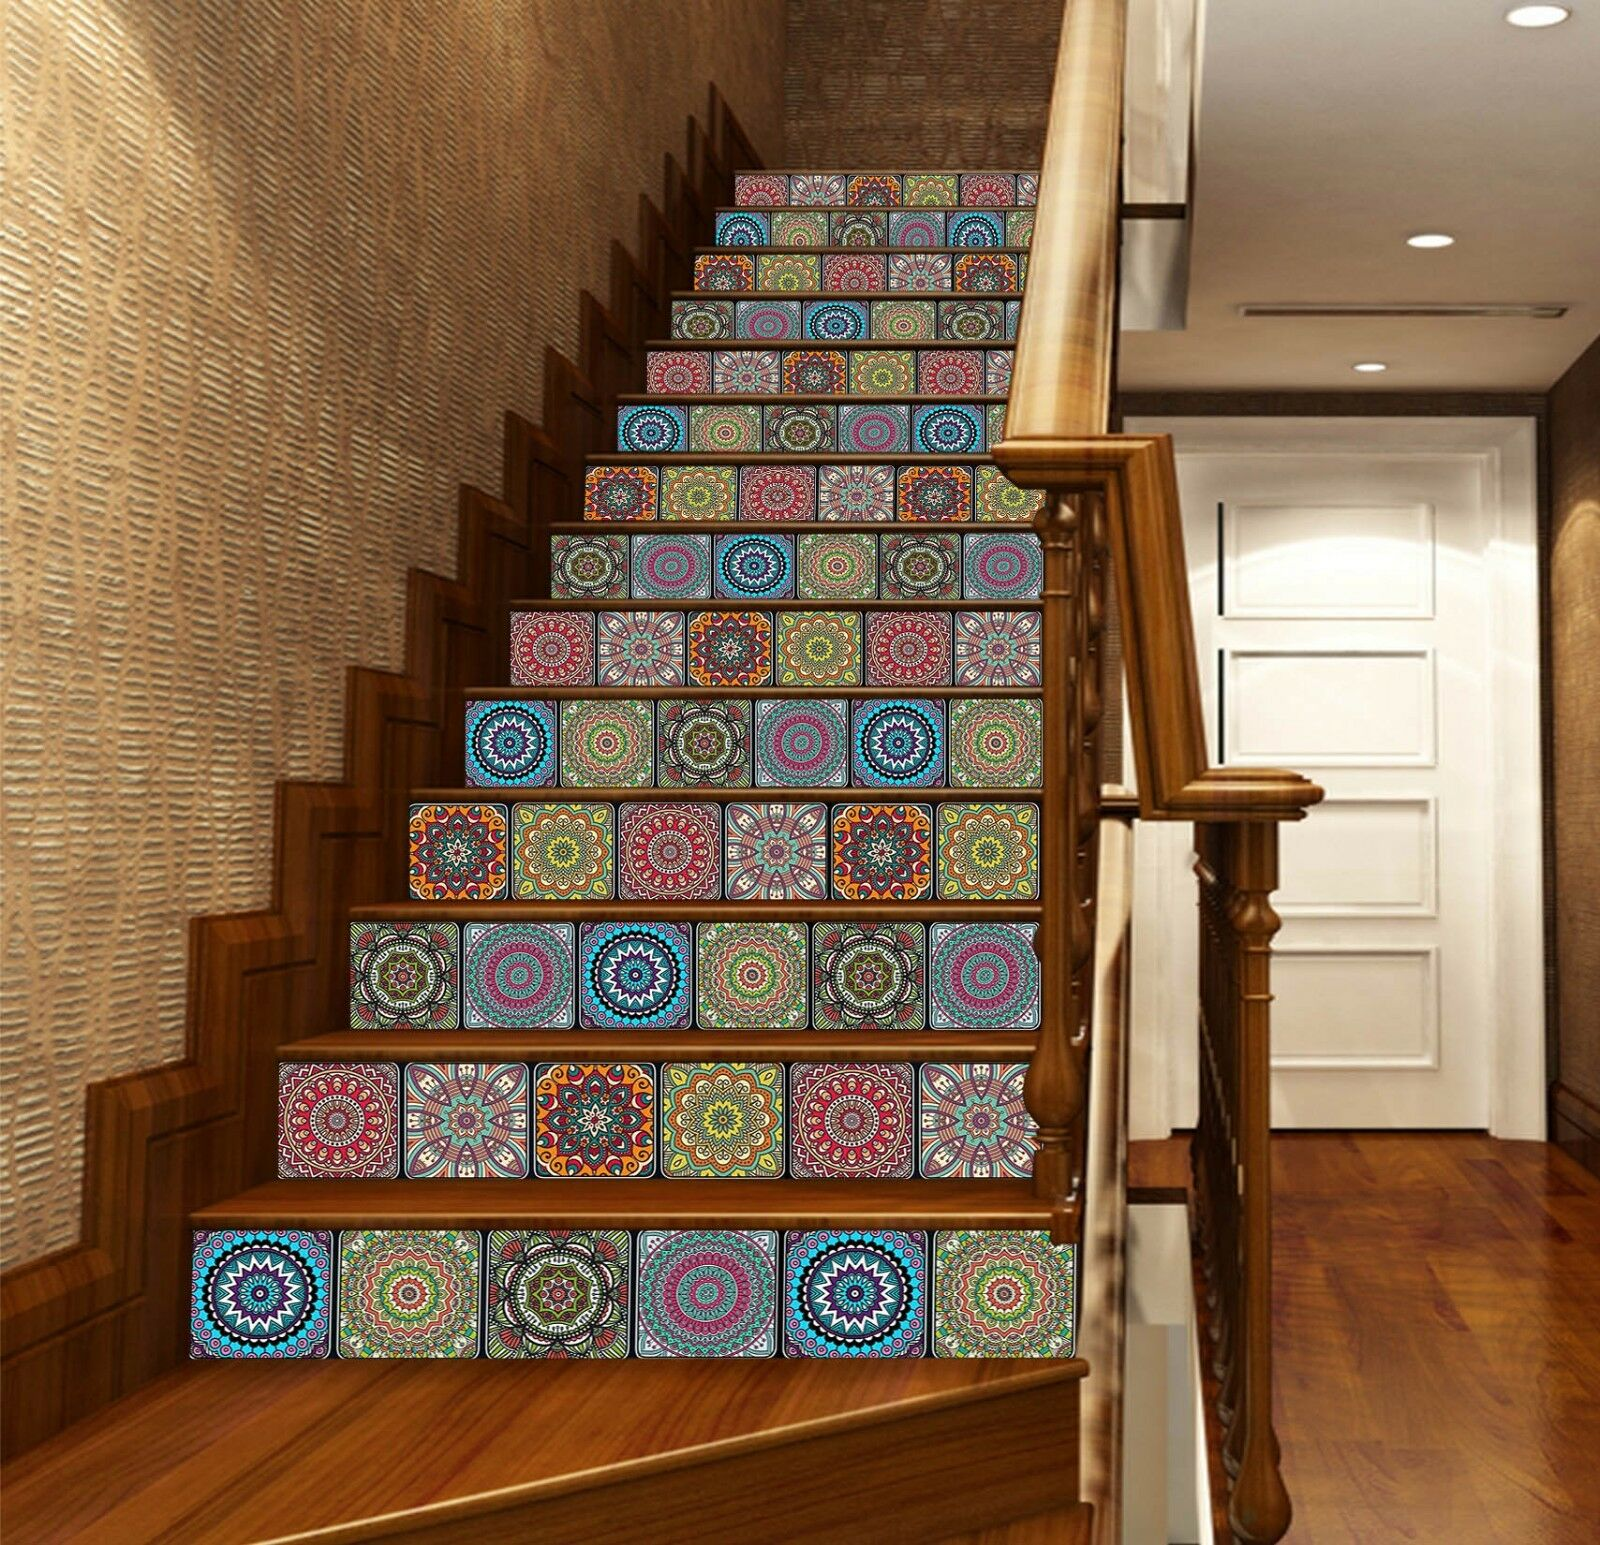 3D Retro 623 Stair Riser Decoration Photo Mural Vinyl Decal Wallpaper UK Lemon